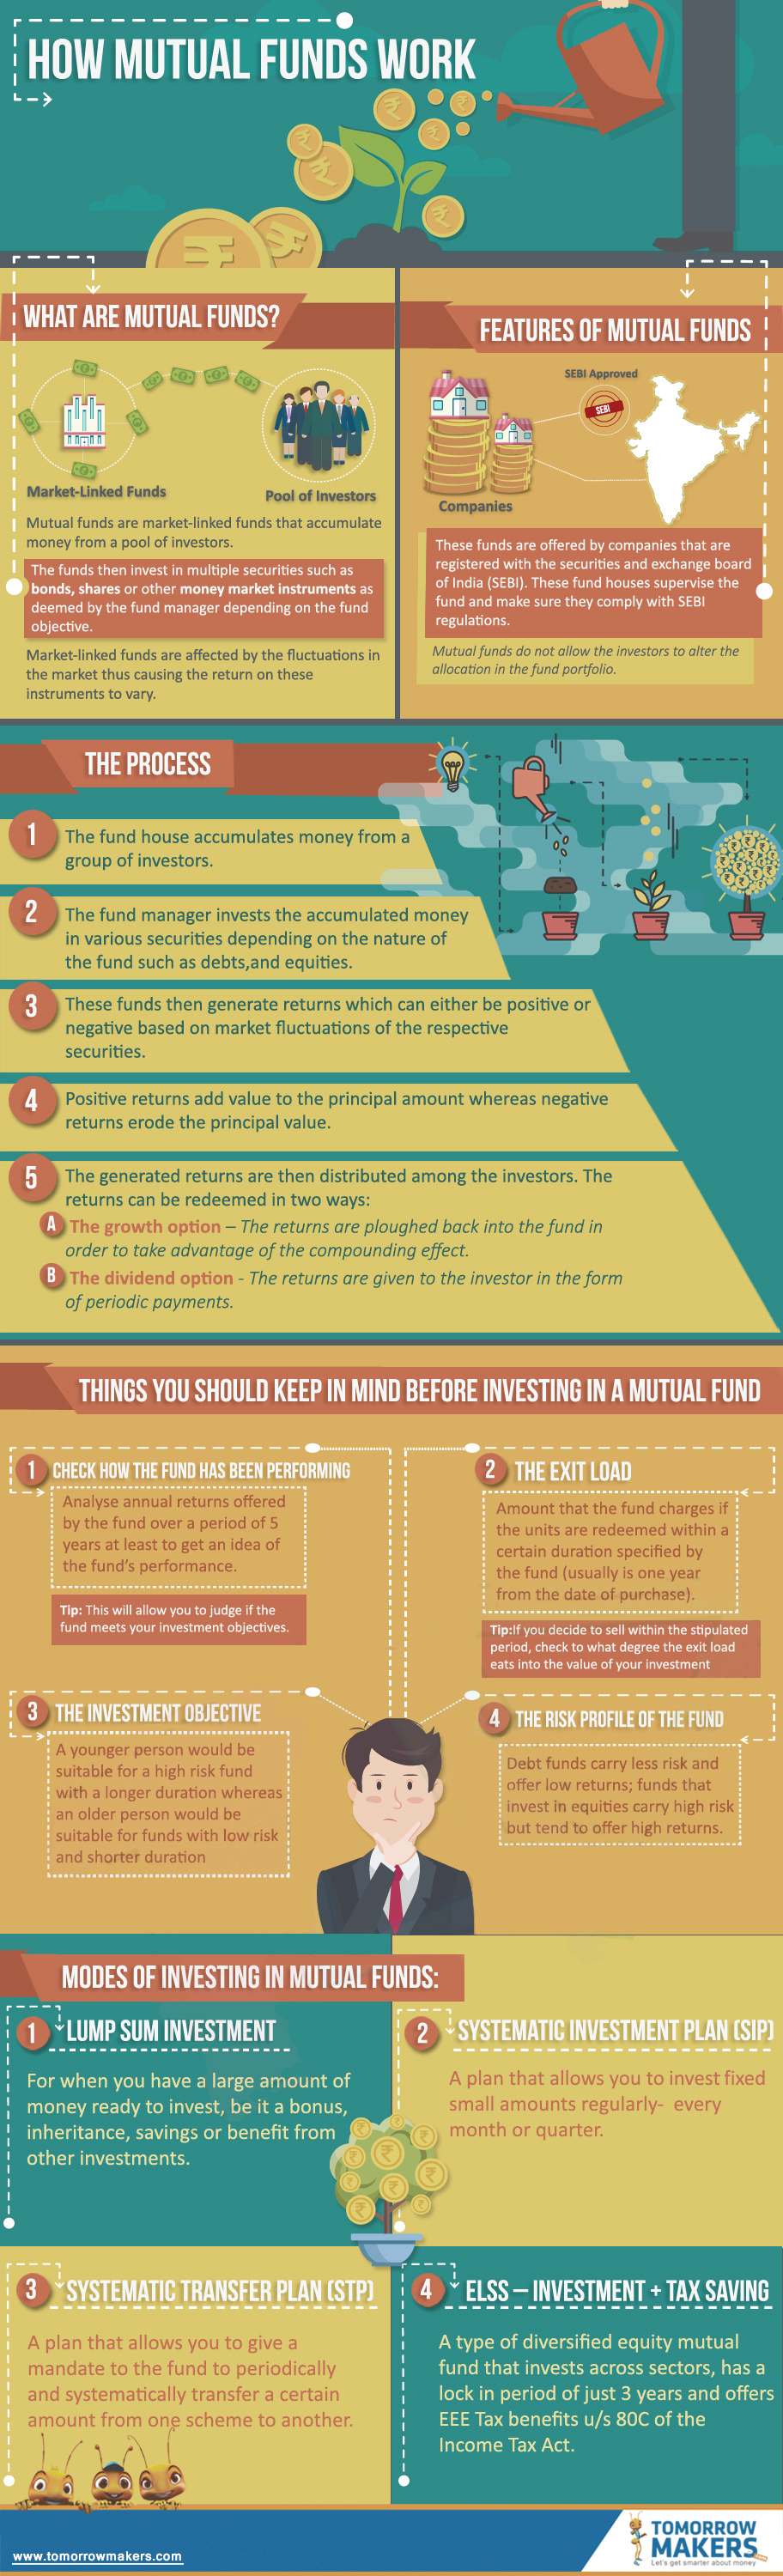 how-mutual-funds-work-infographic